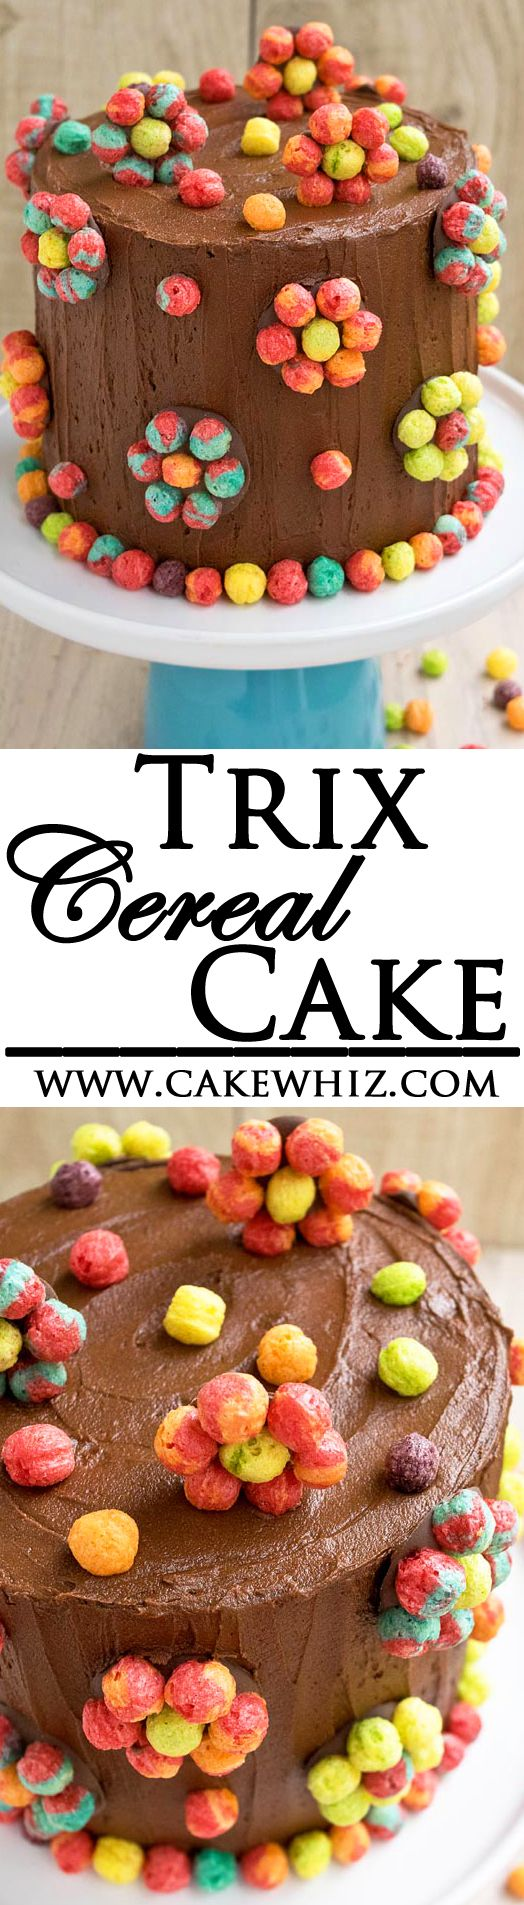 Use this step by step cake decorating tutorial to make an easy TRIX CEREAL CAKE. It's very pretty and colorful. Perfect for Spring parties and girls birthday parties. From cakewhiz.com